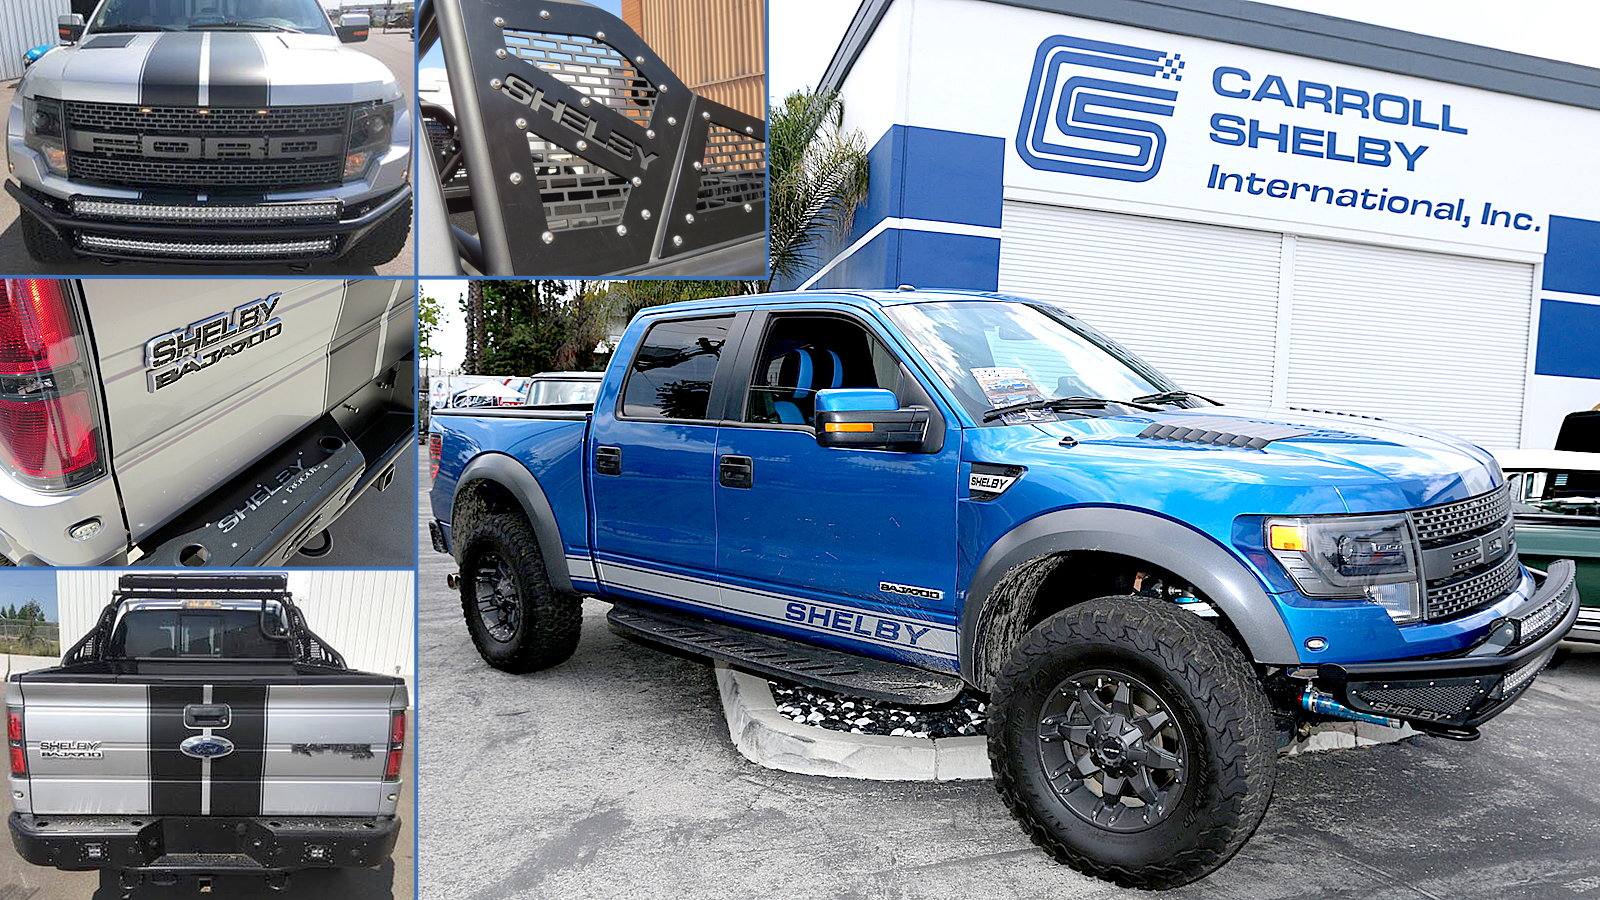 Beast Mode 2013 Shelby Baja 700 Can Be Yours at the R&S Newport Beach Sale